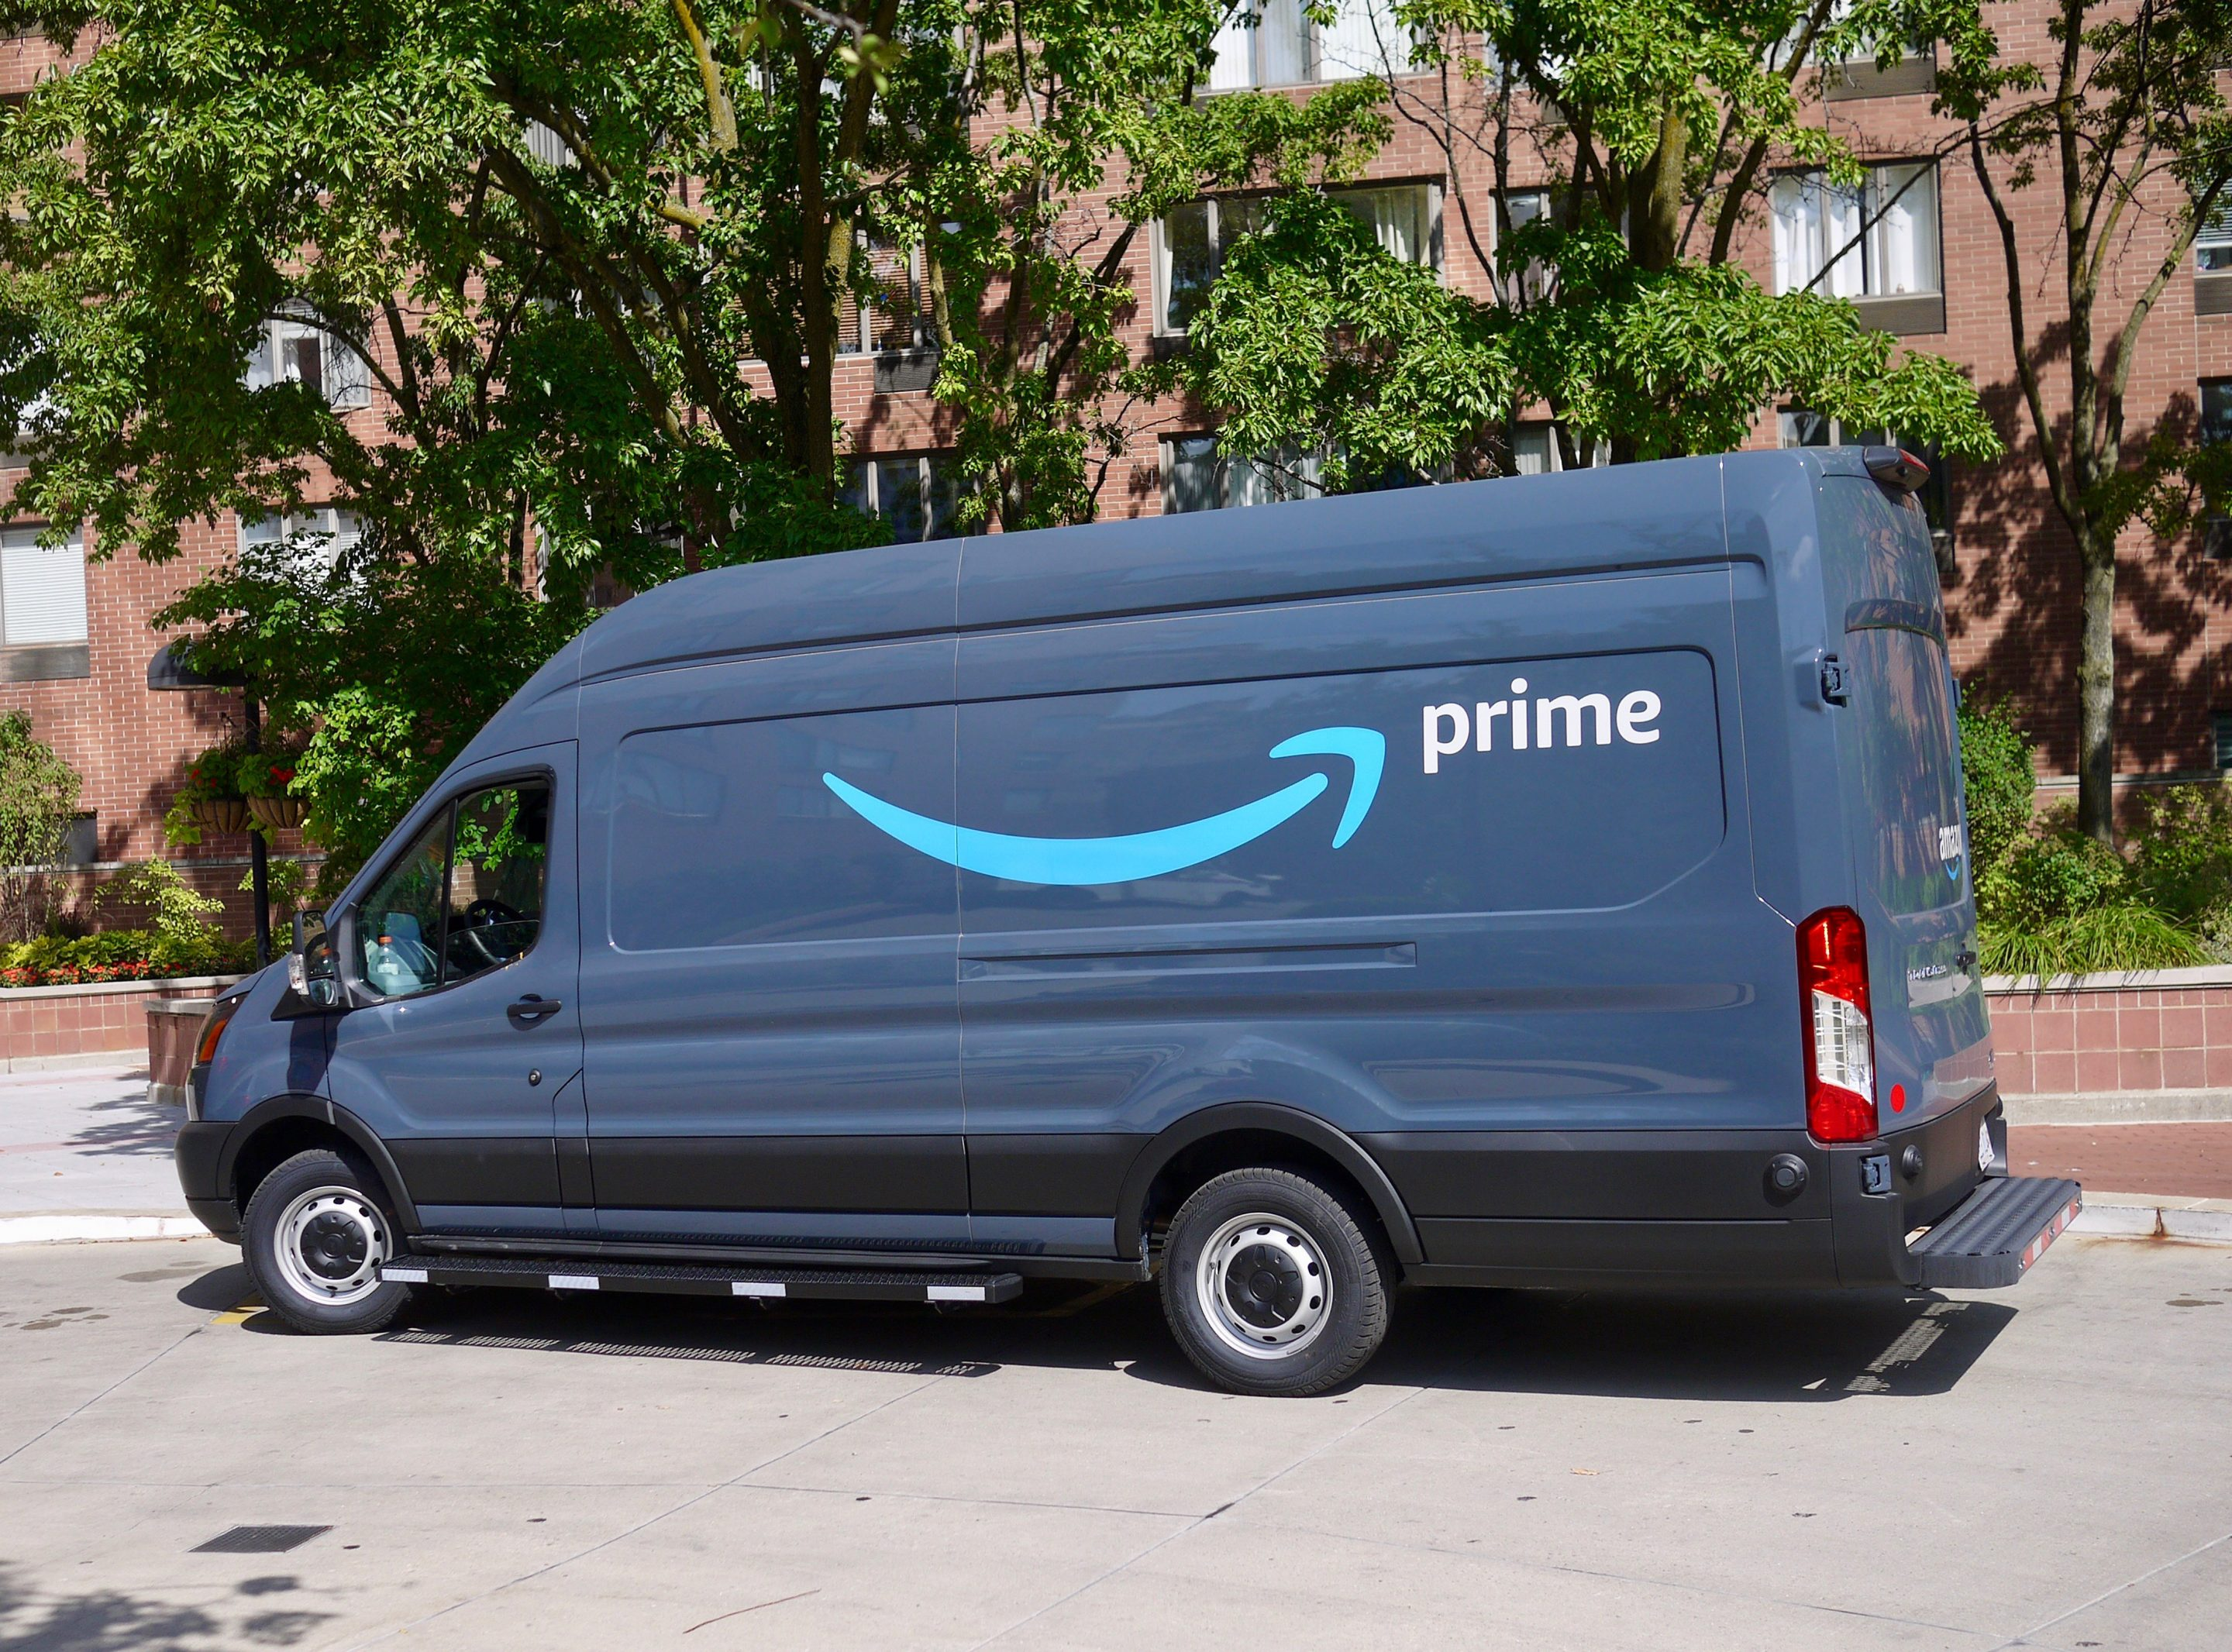 Amazon Prime's numbers (and influence) continue to grow